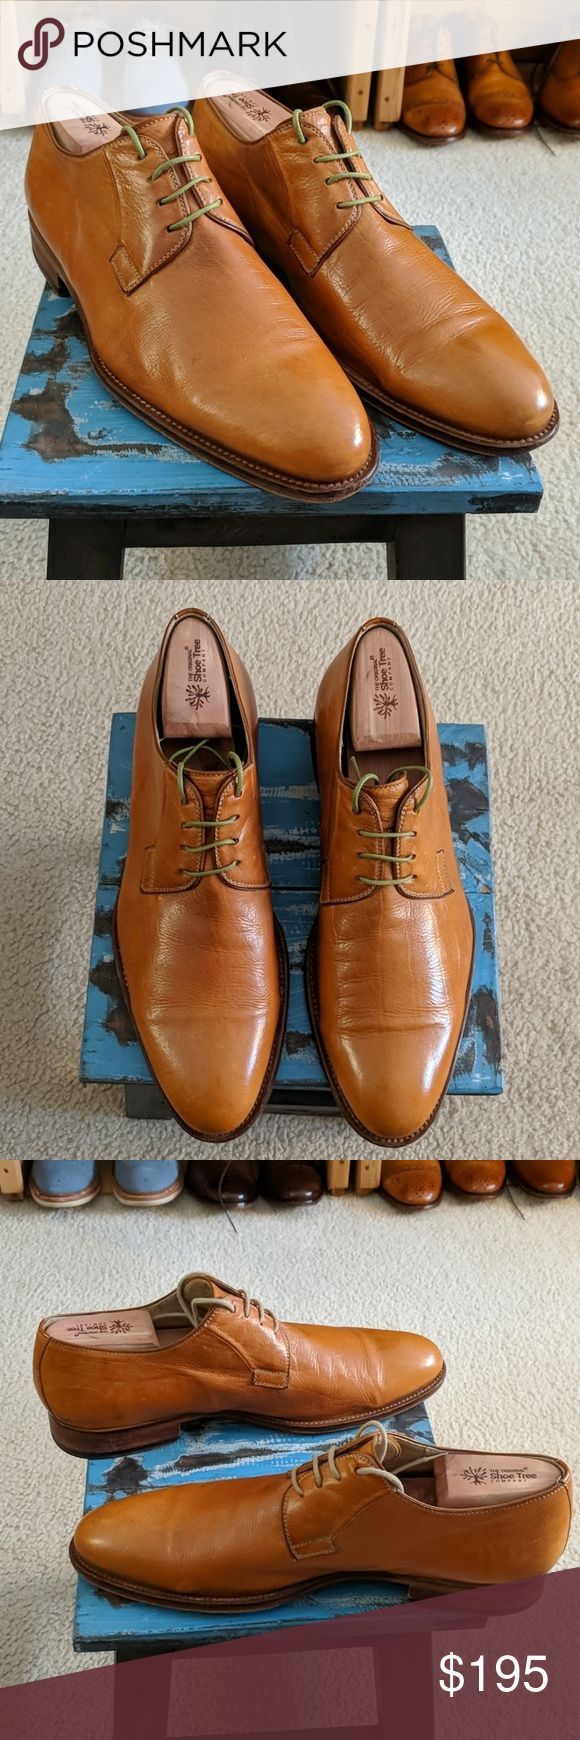 Magnanni Derby Shoe These get more compliments than any other shoe I own.  Incre...